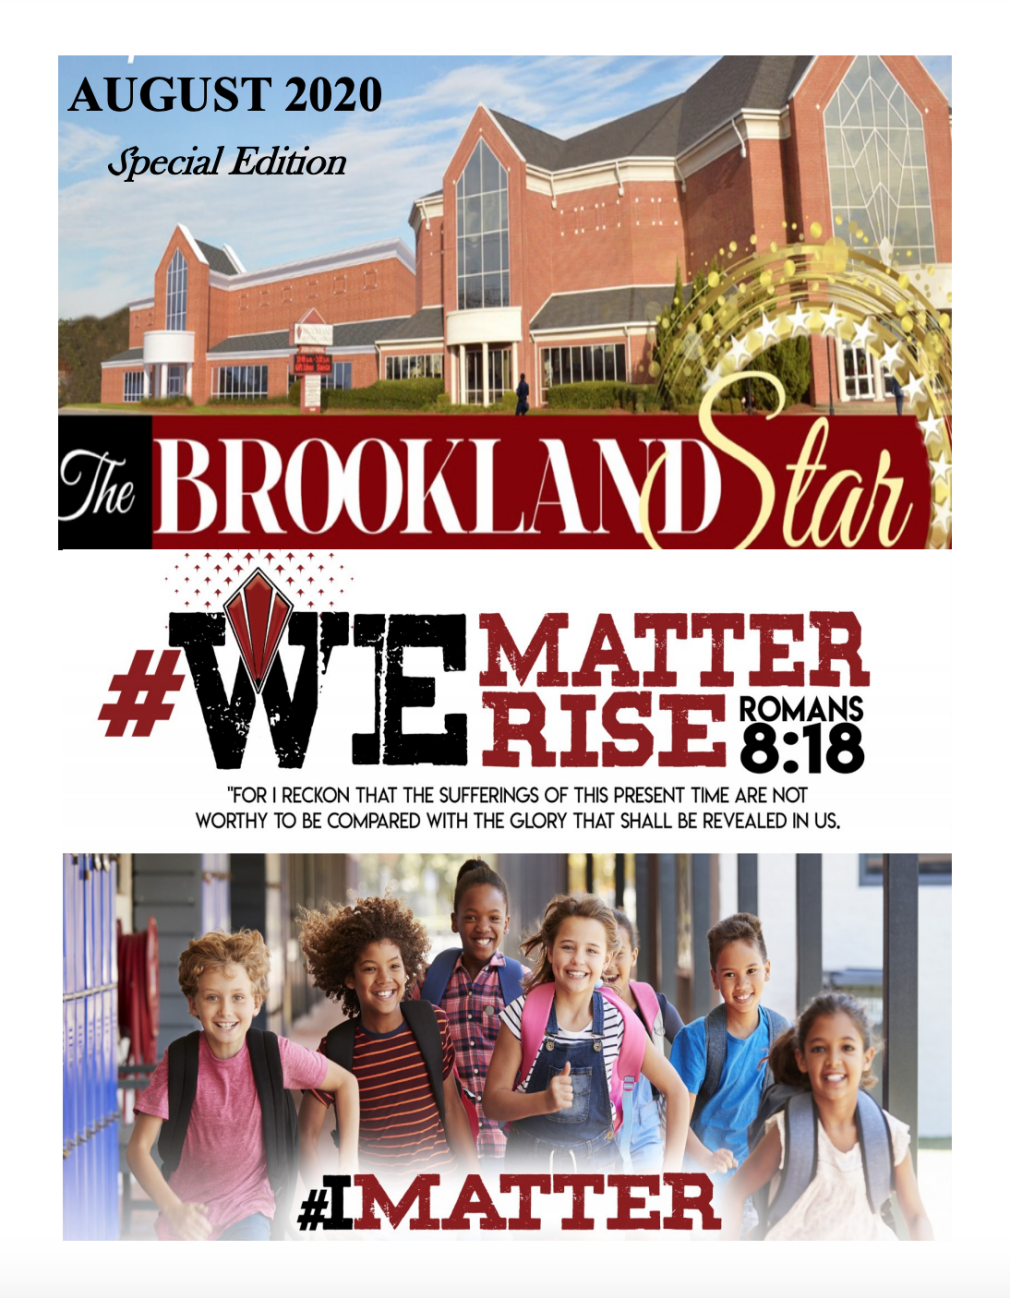 The Brookland Star August 2020 Edition